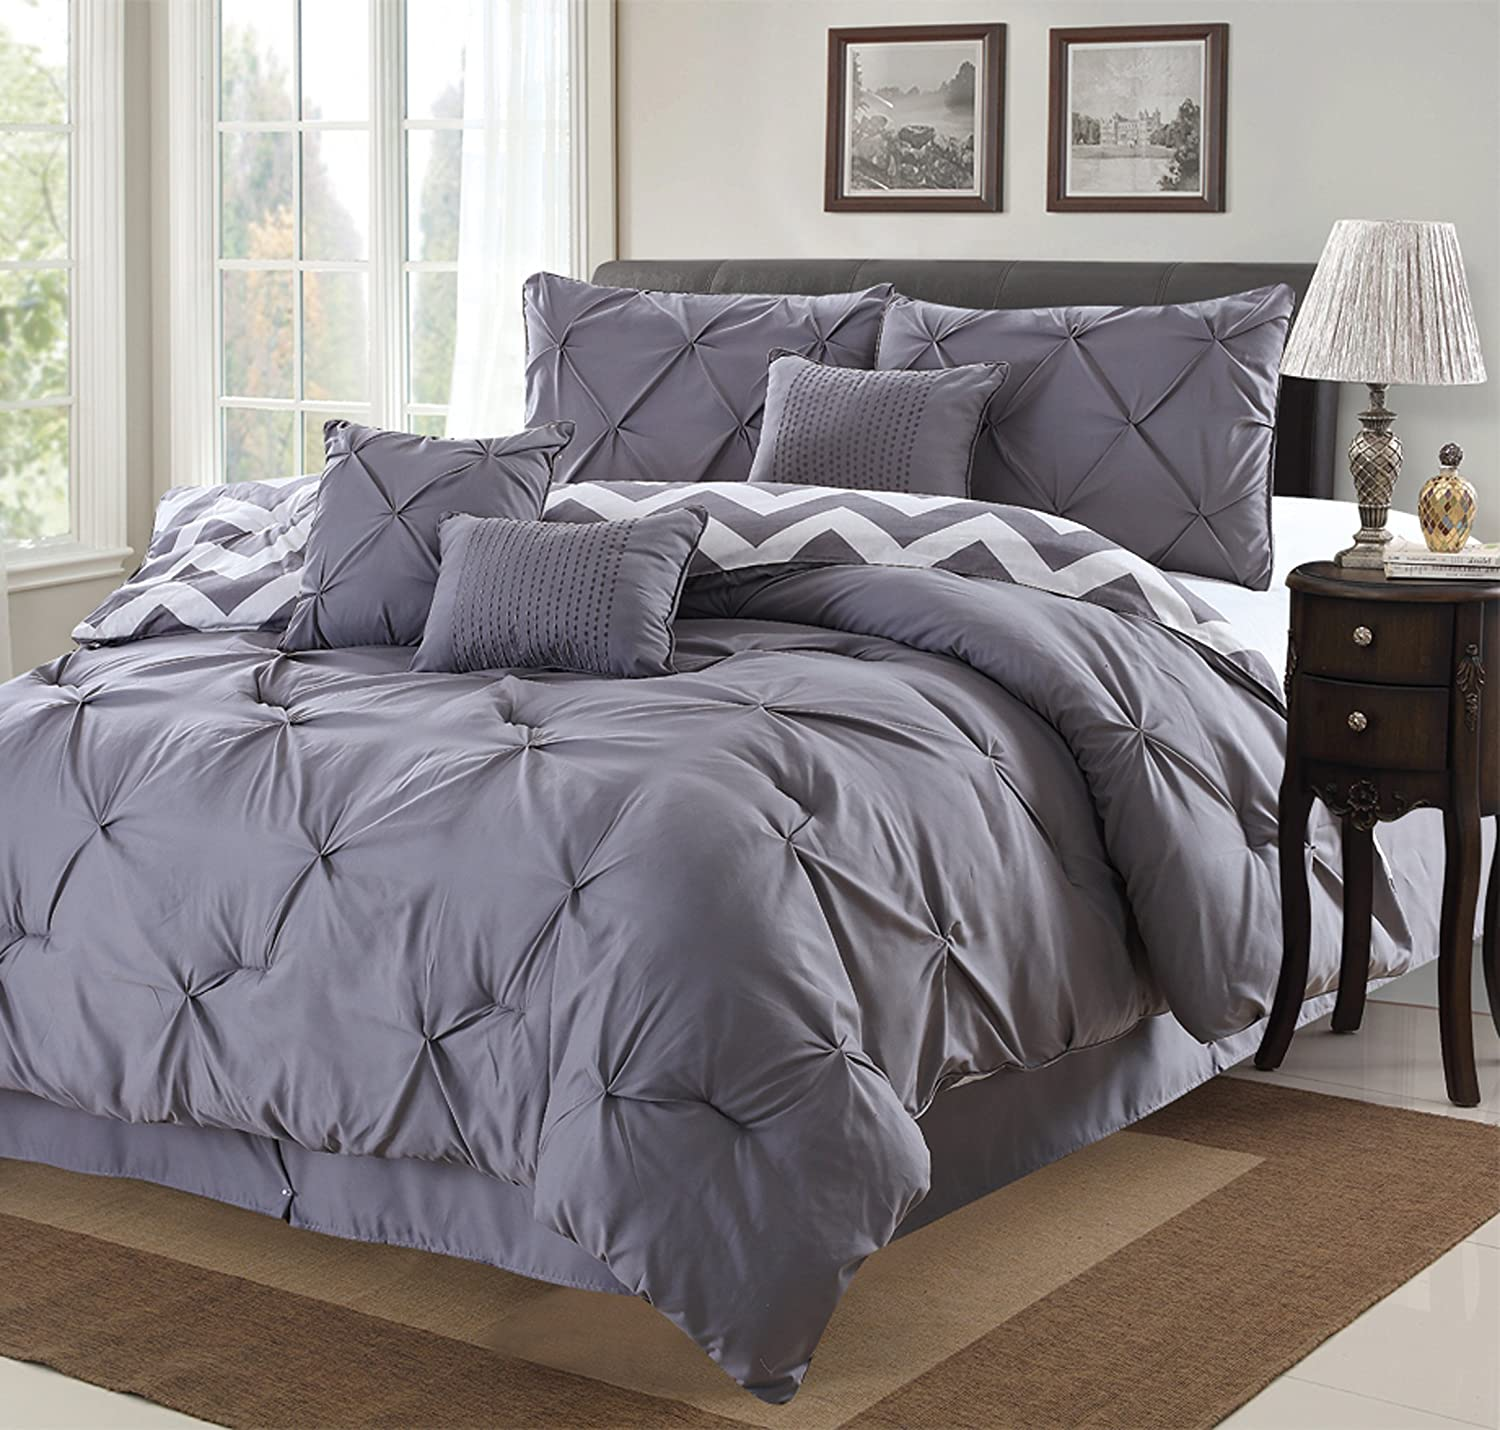 duvet quilts comforter set heathville home with bedding sets cover aqua chic style and sale piece ease pleated pinch